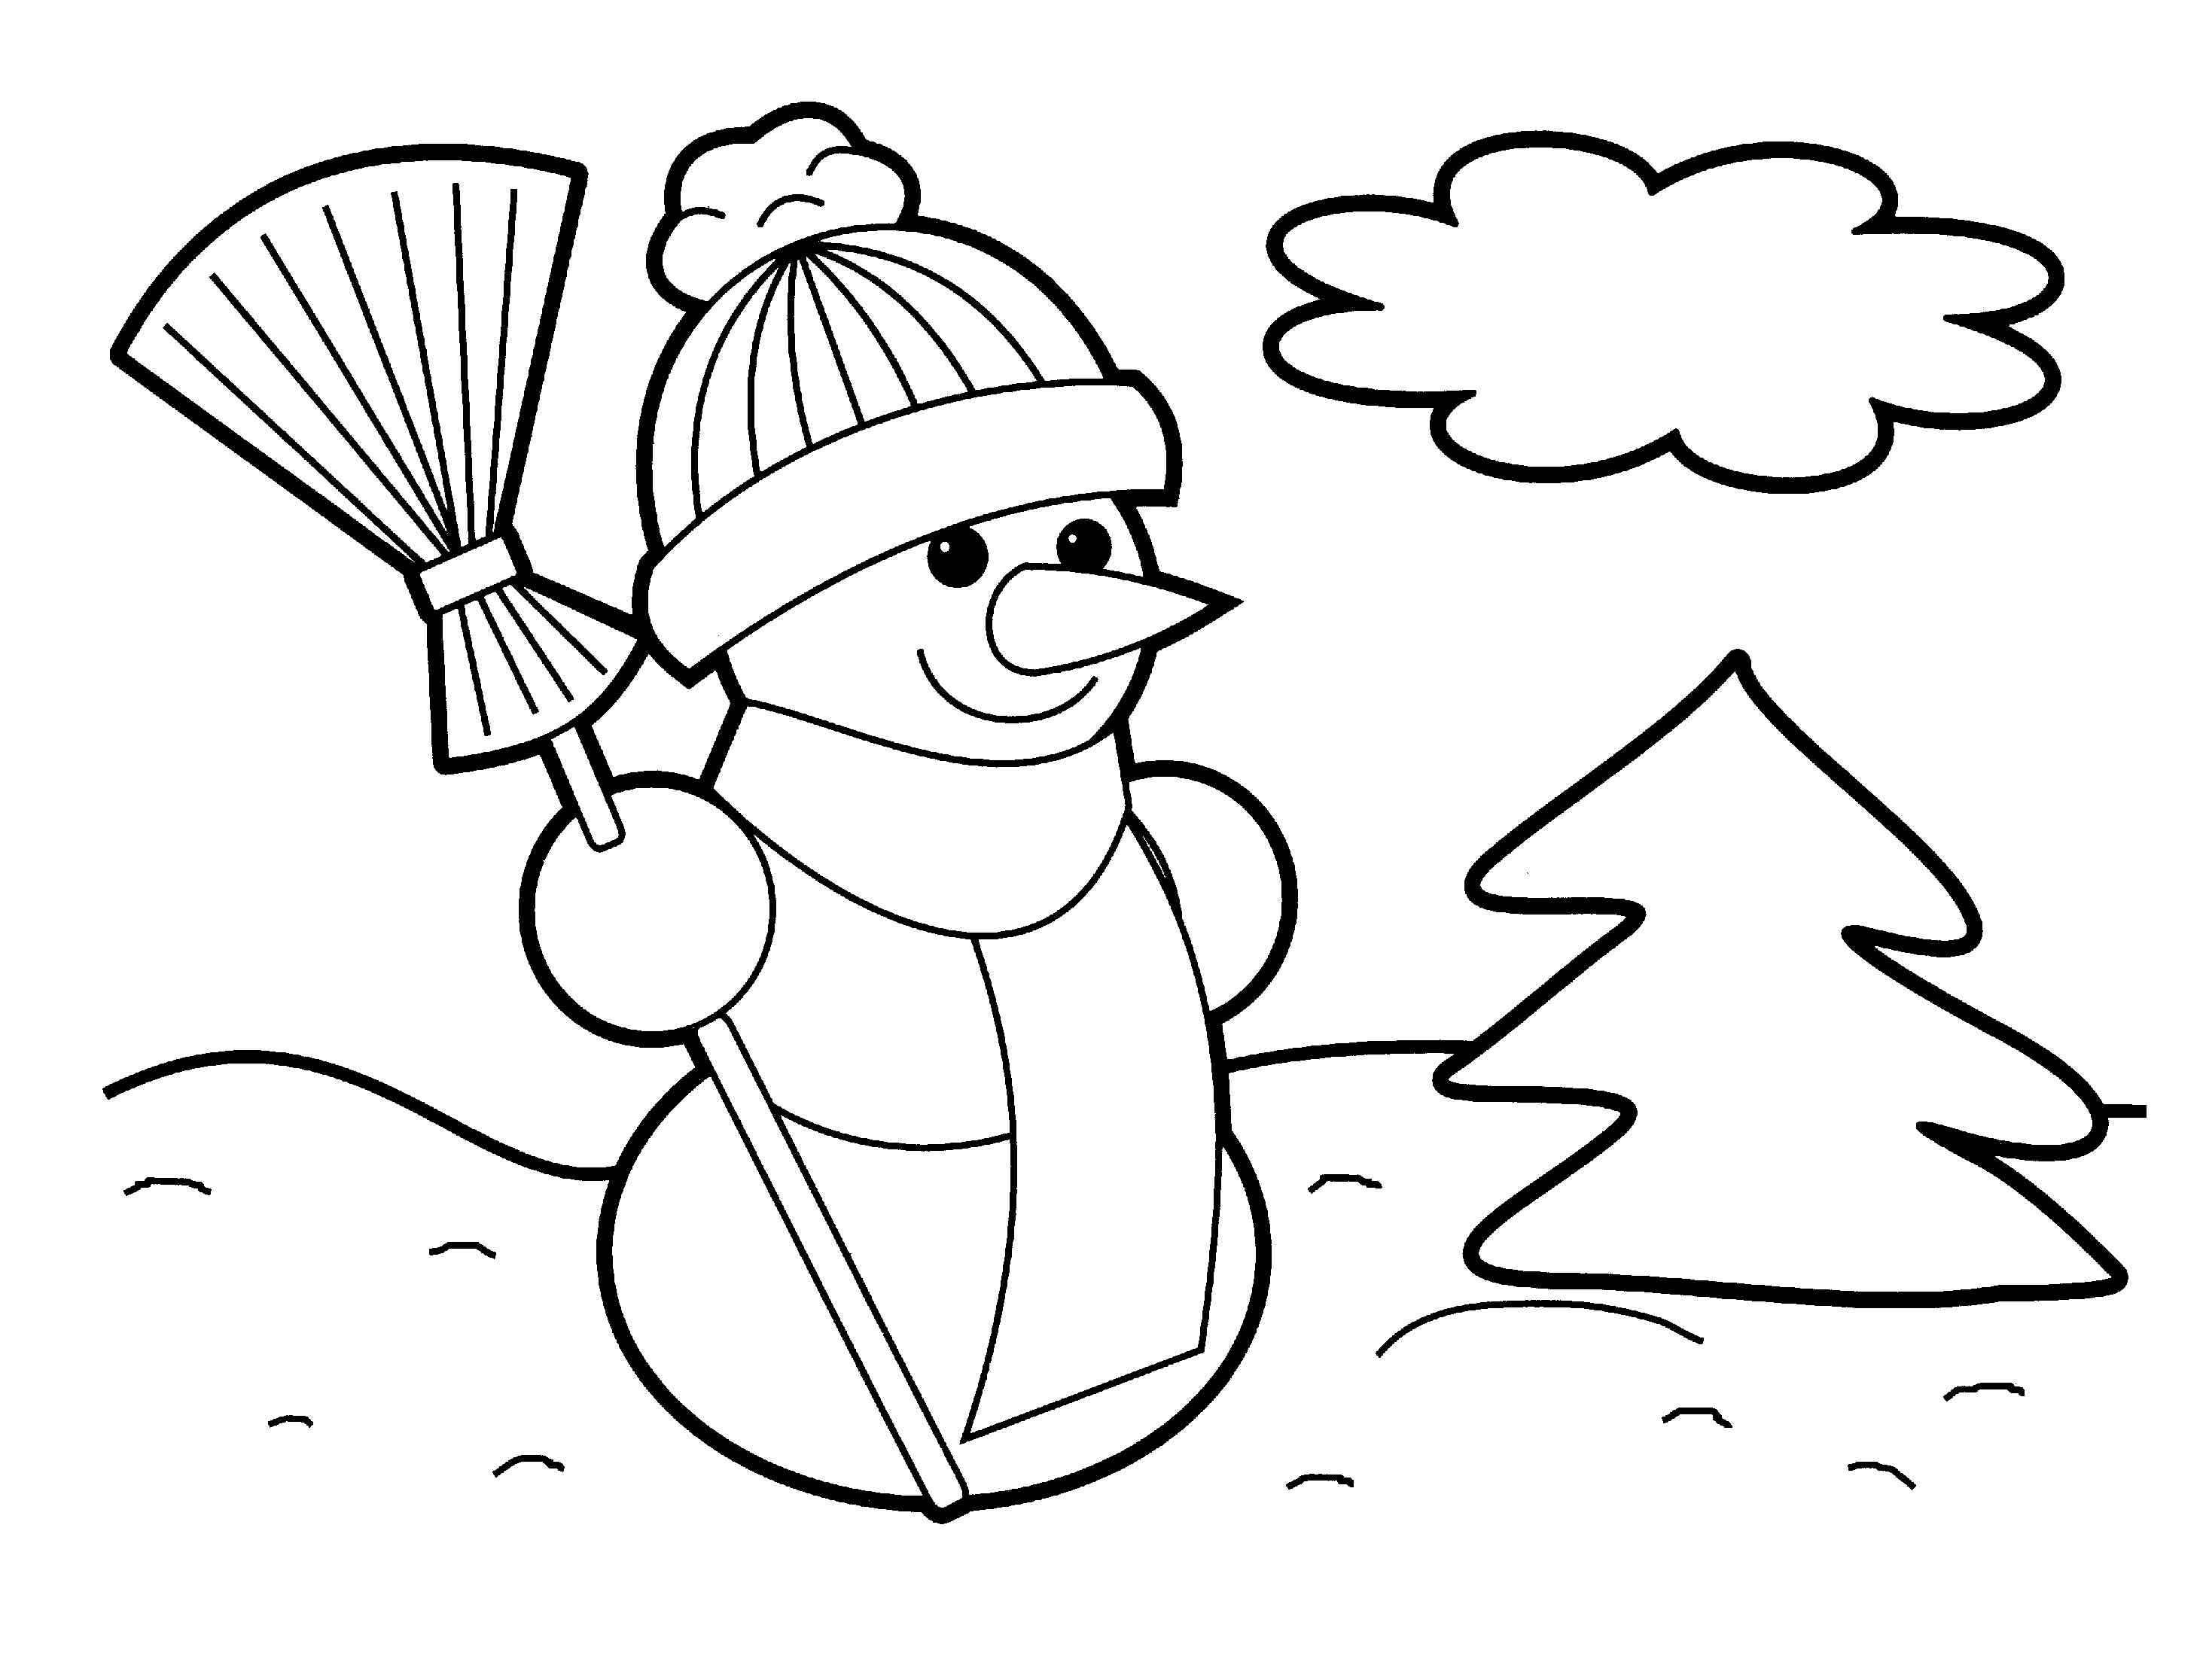 Christmas Coloring Sheets For Kids Free  Christmas Coloring Pages for Kids